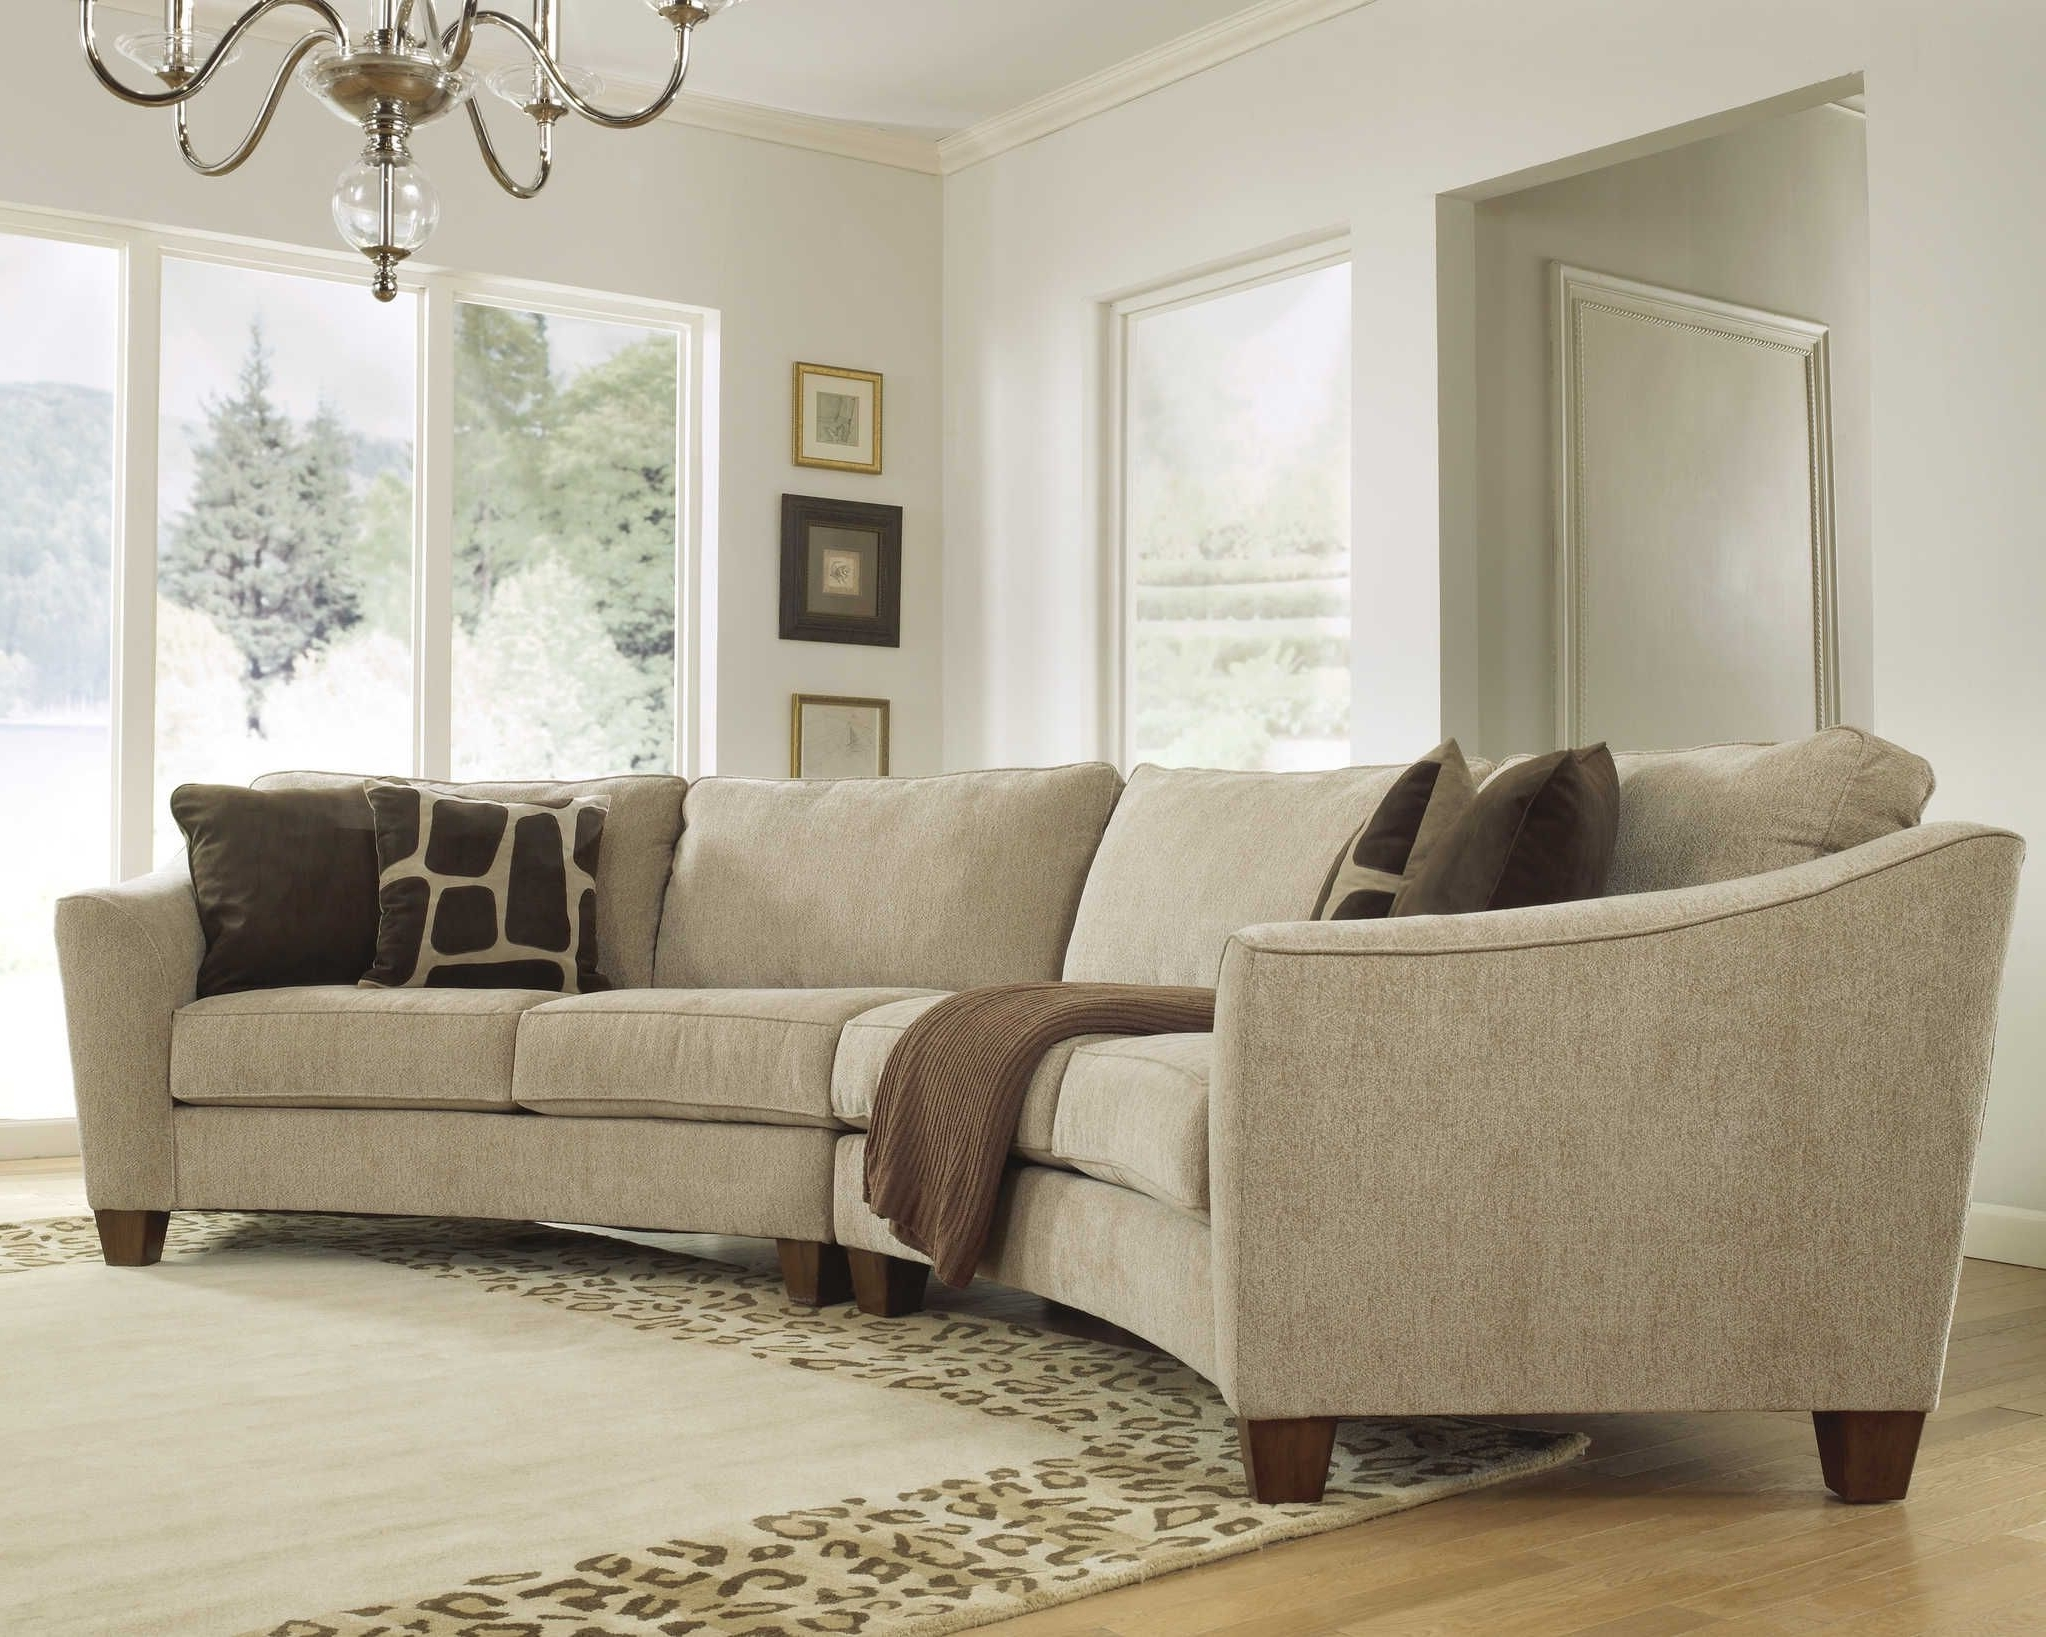 Curved Sectional Sofa Set – Rich Comfortable Upholstered Fabric For Most Recent Rounded Corner Sectional Sofas (View 14 of 20)